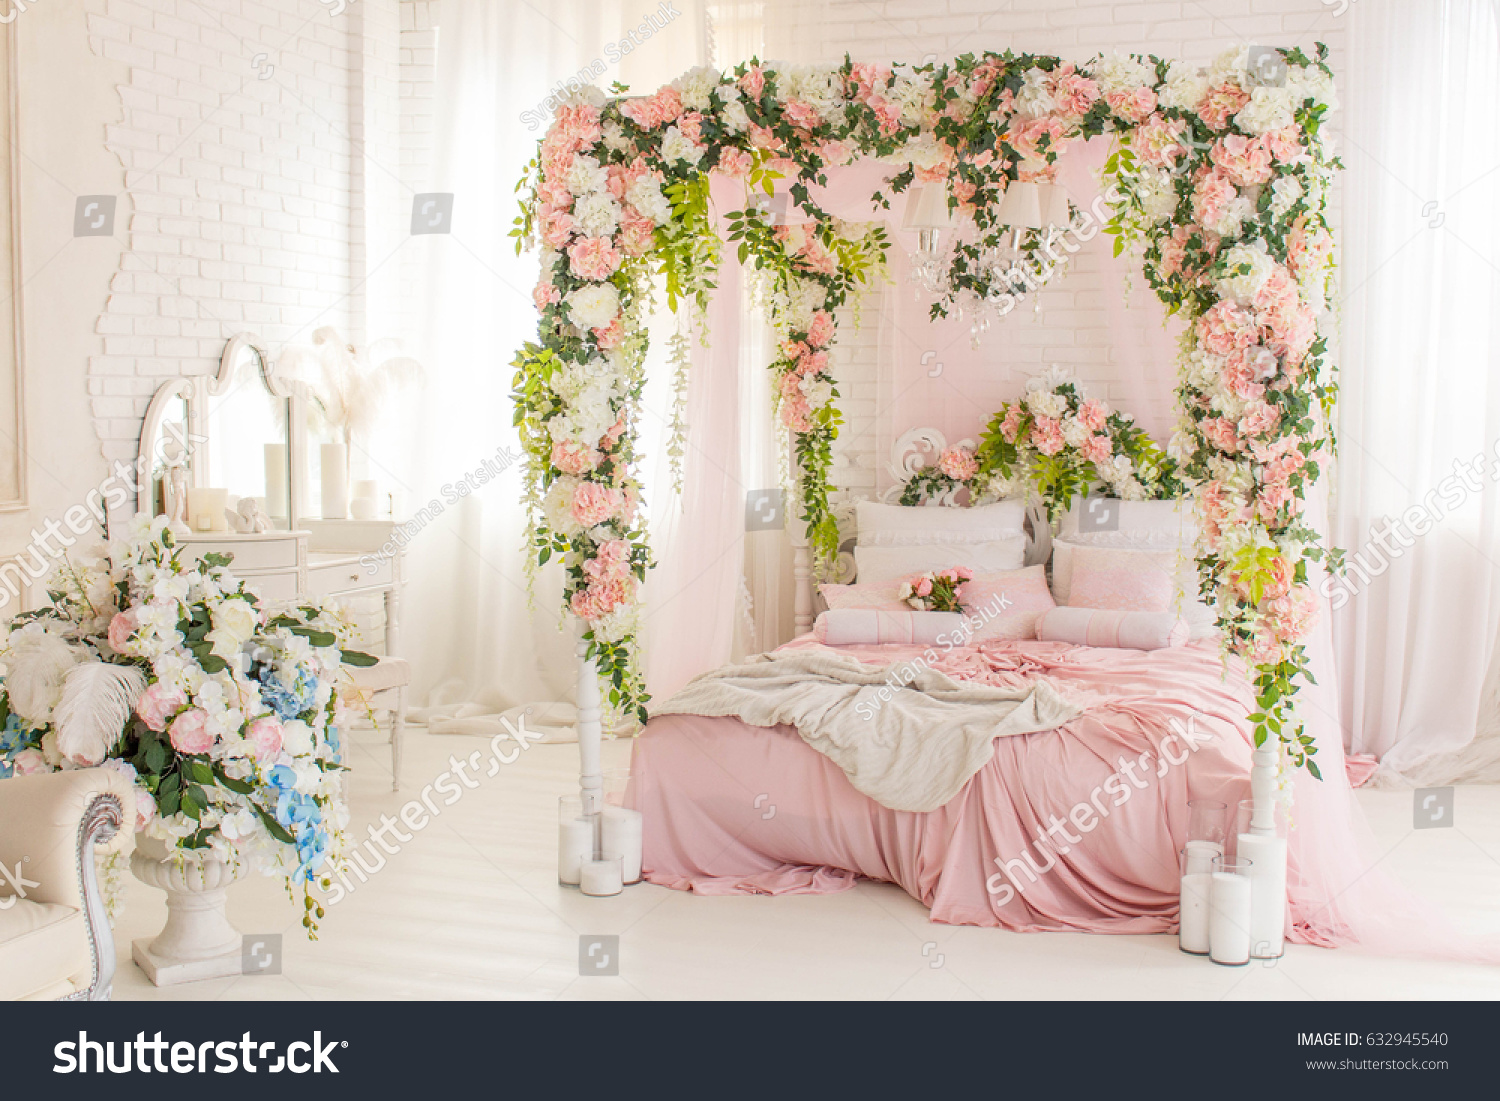 Bedroom Dressing Table With Pink Bed And Flower Decoration